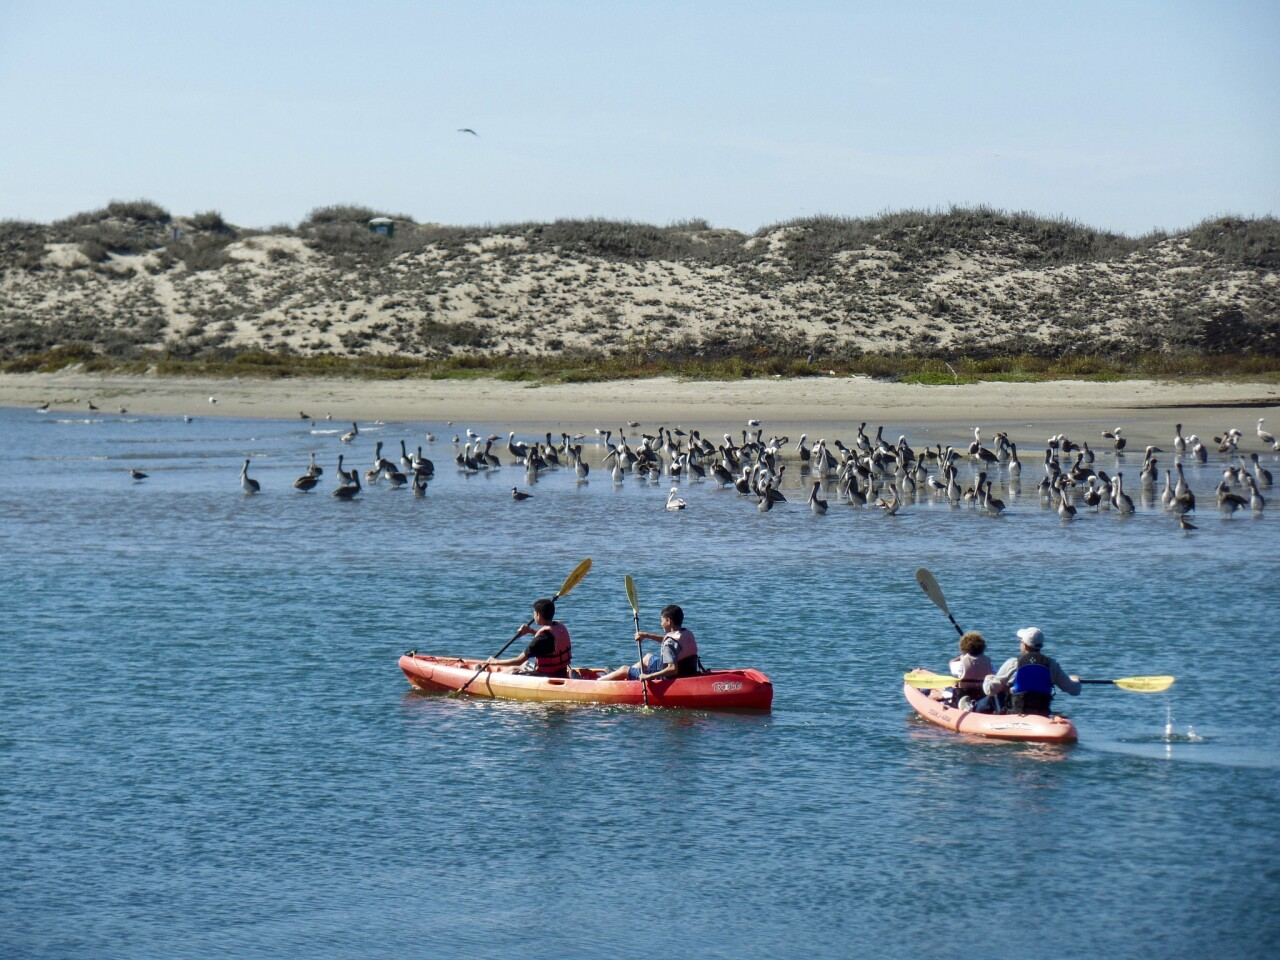 Kayakers paddle through the Elkhorn Slough, home to migrating sea birds and other wildlife by Moss Landing, Calif.